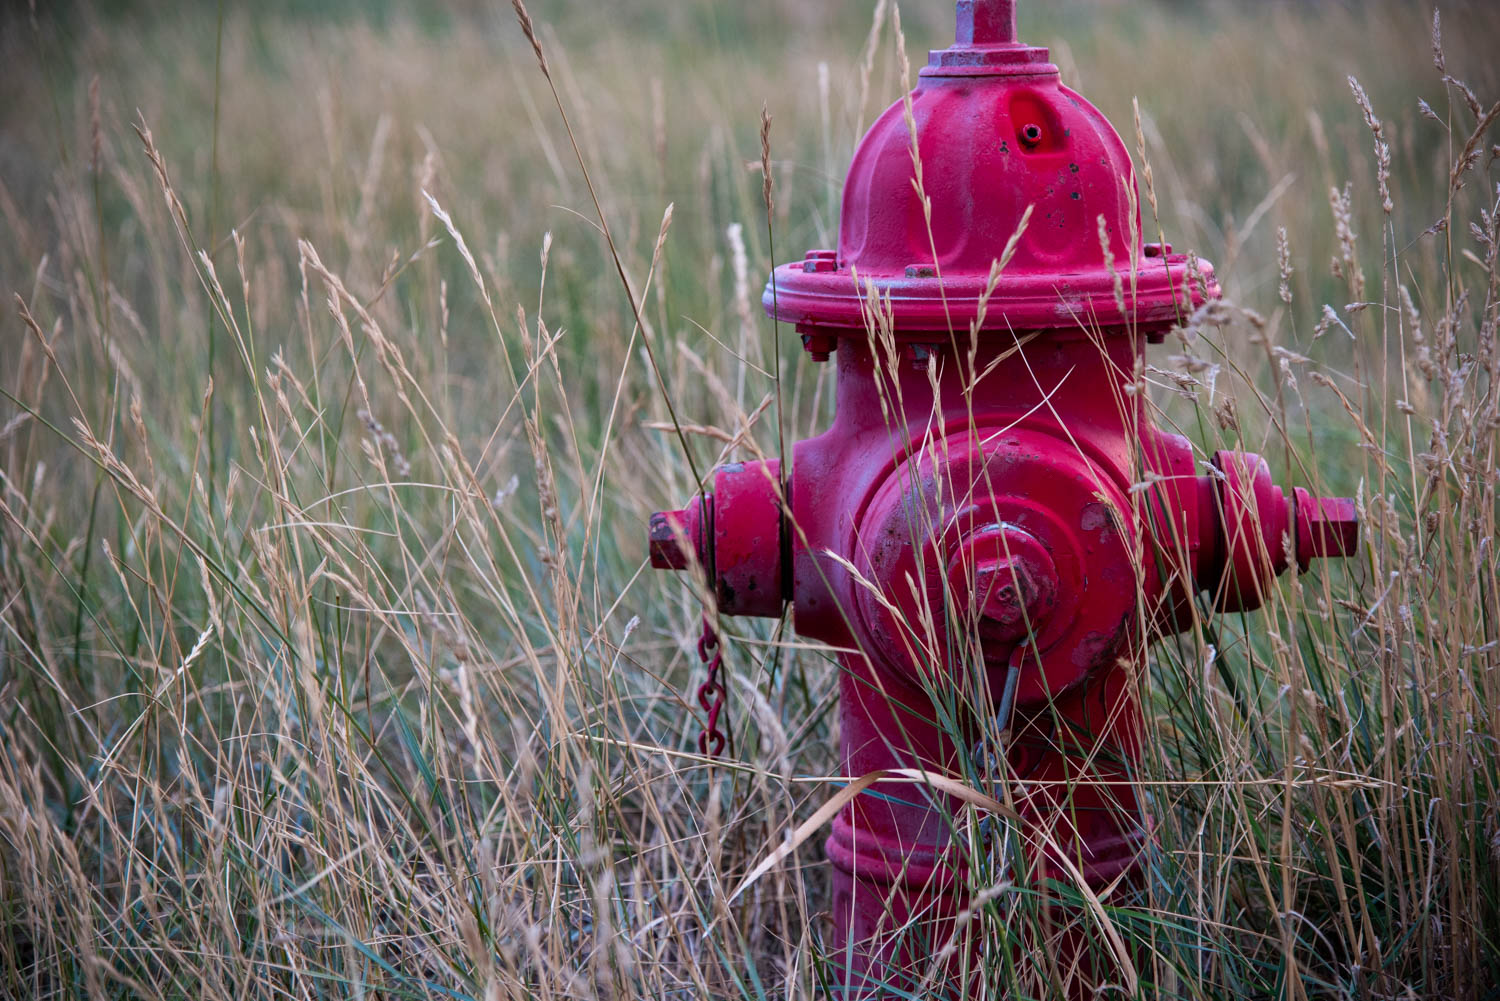 Hydrant in the Grass